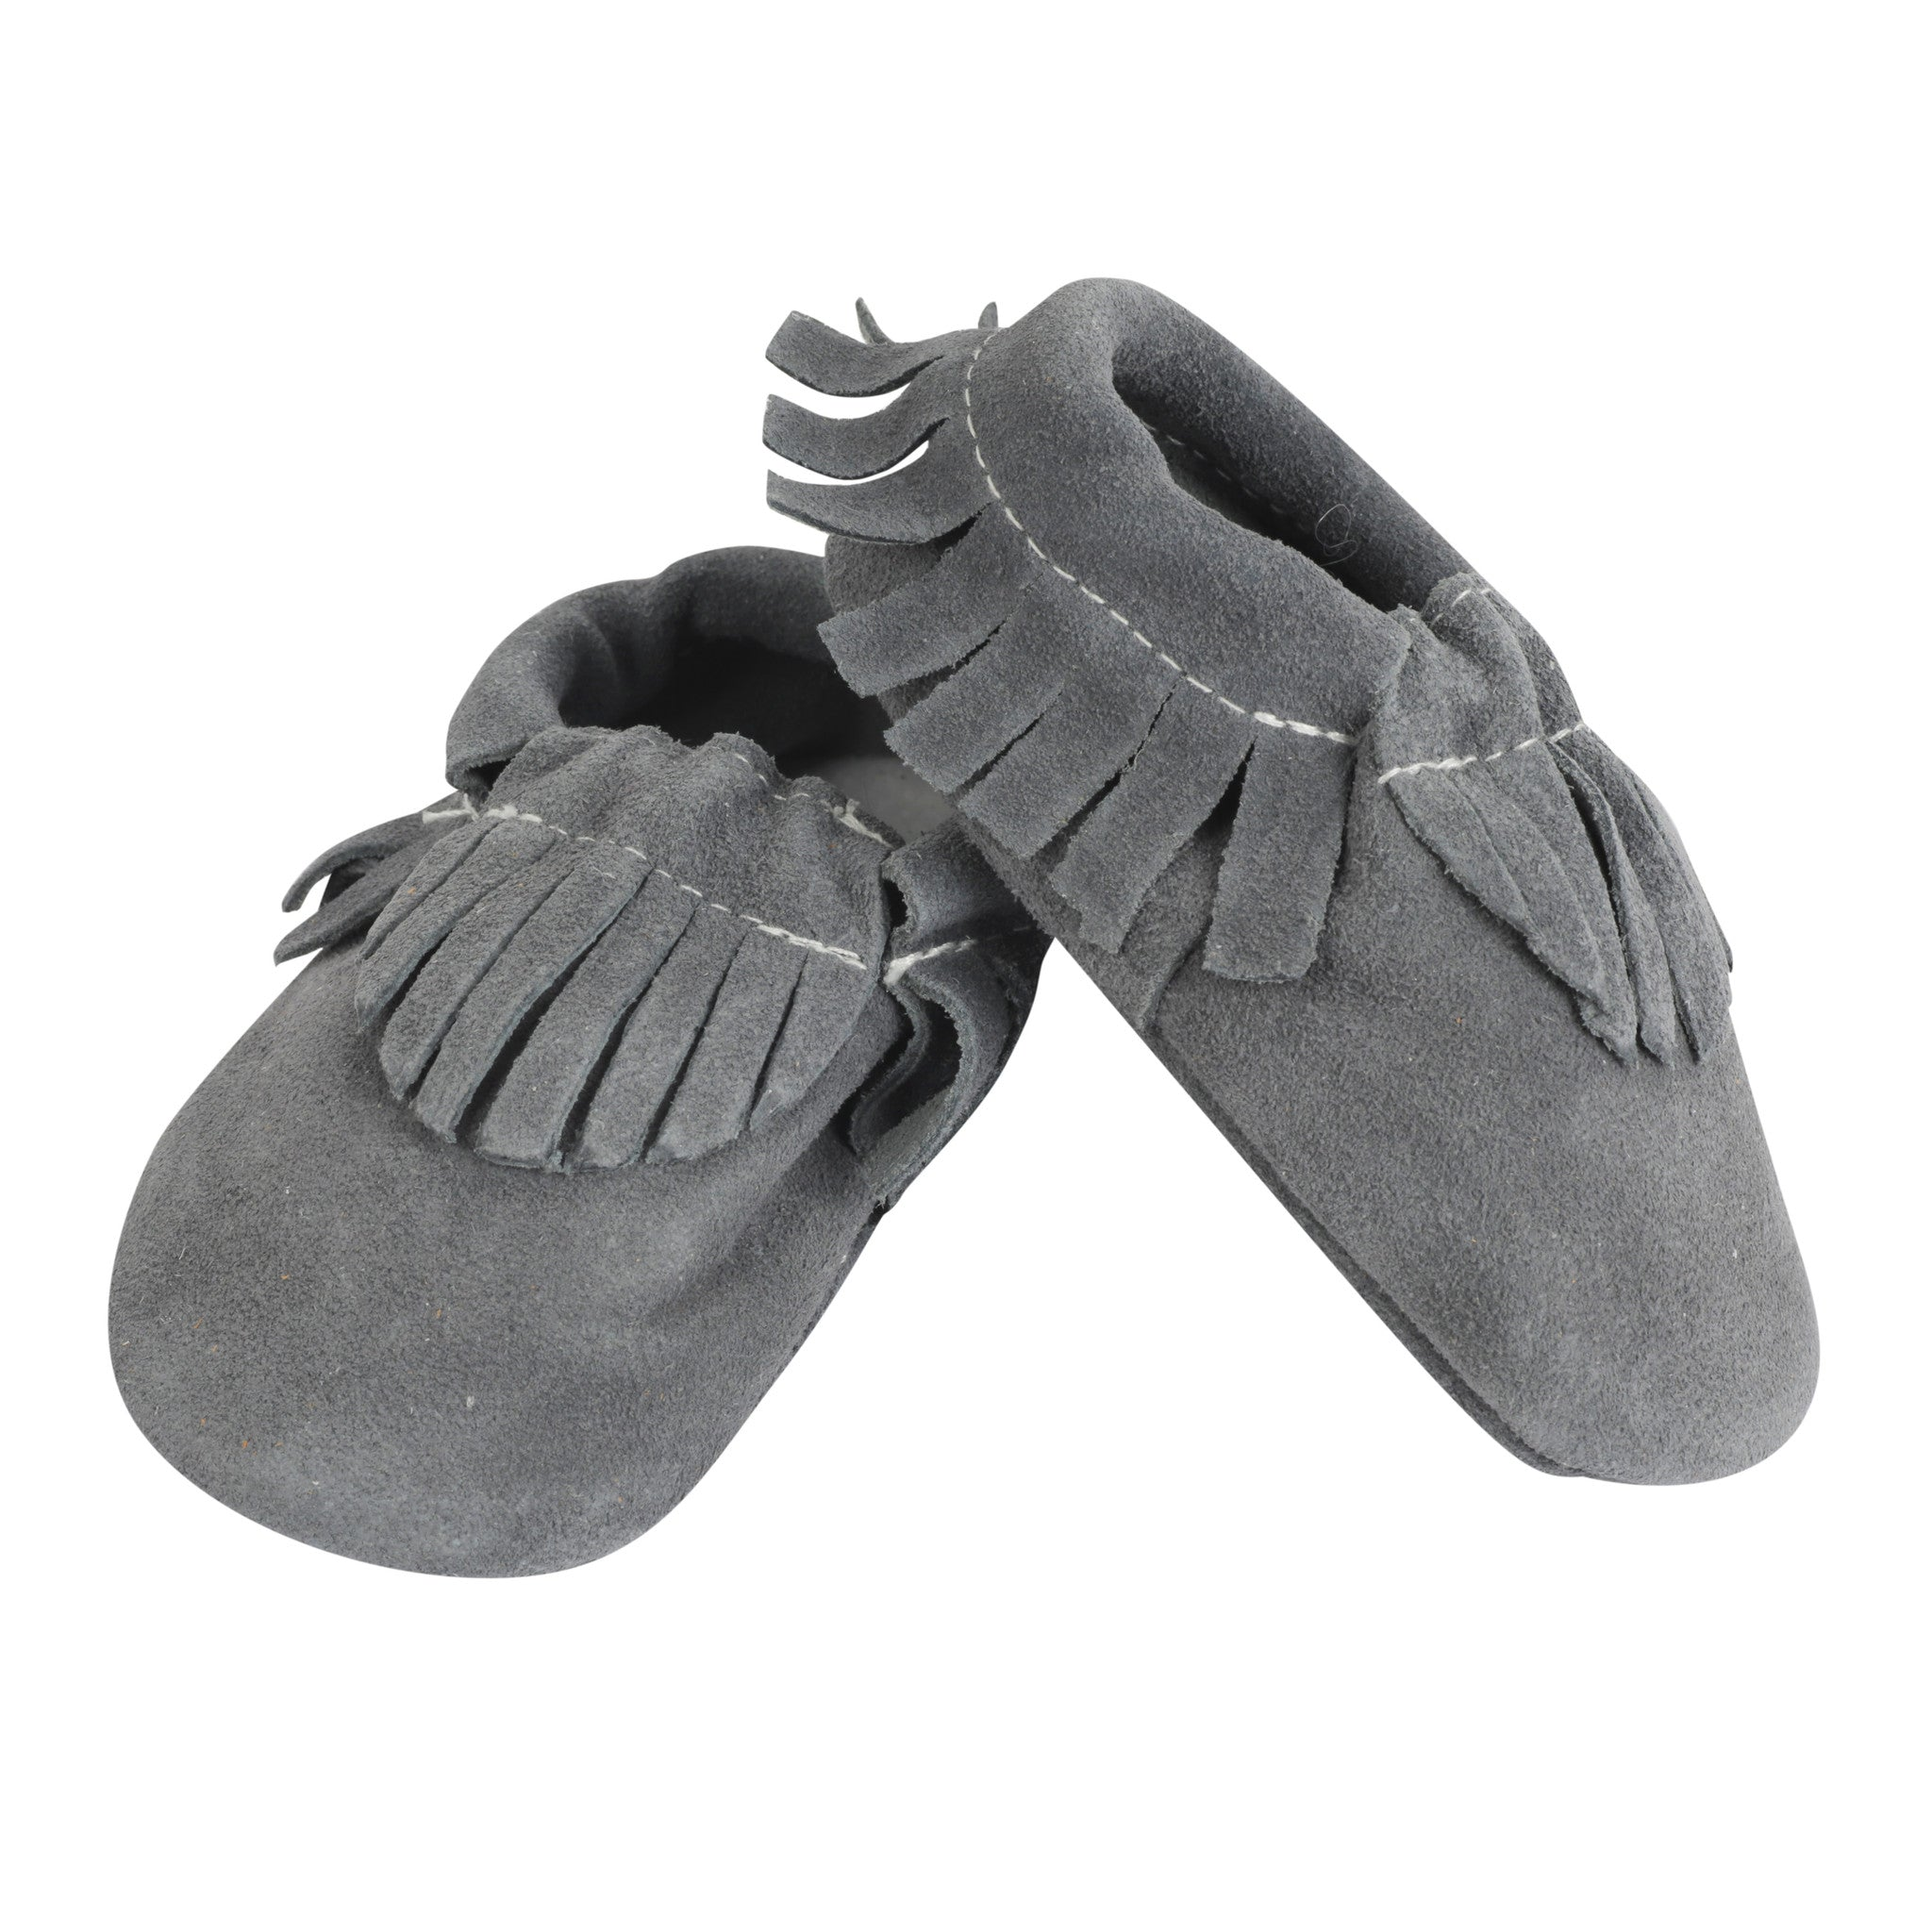 Moccasin, Pre-Walker Baby & Toddler Shoes - Grey Suede